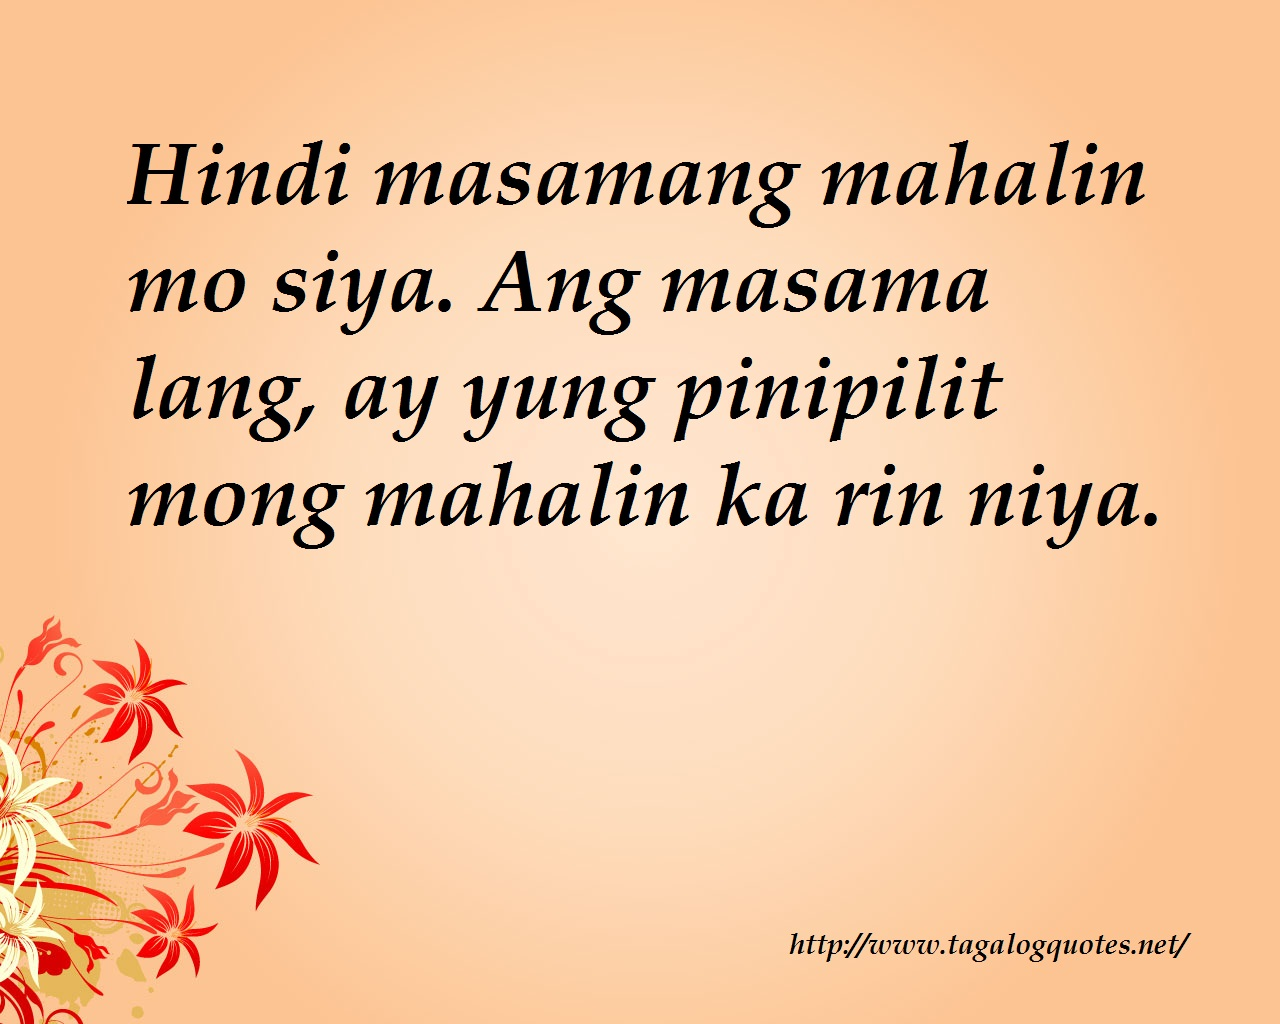 Sad Love Quotes And Sayings Quotesgram: Tagalog Sad Love Quotes For Him. QuotesGram